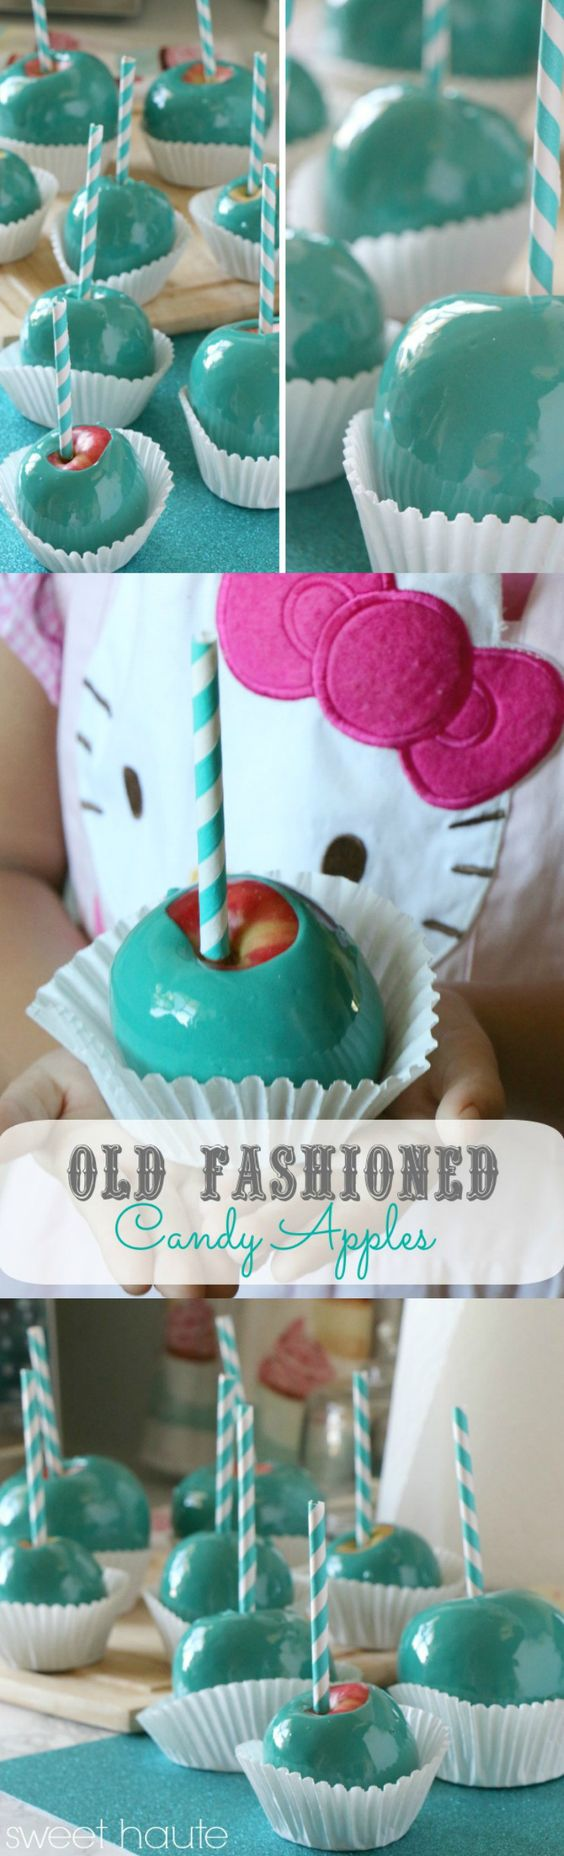 Tiffany Blue Candy Apples- SWEET HAUTE how to make tiffany blue candy apples #candyapplerecipes #recipe #diy #bluecandyapples #candyapples